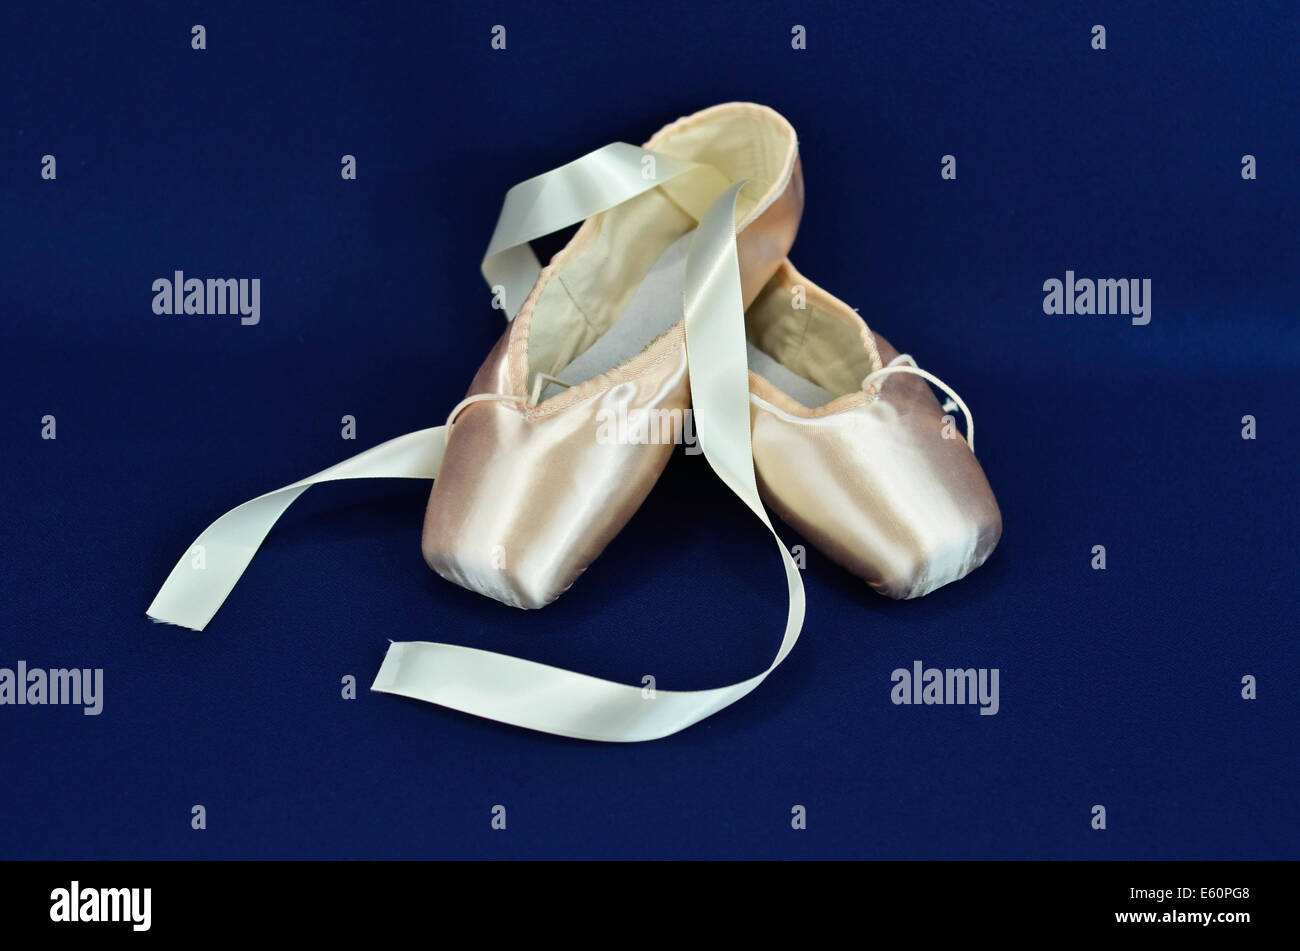 Ballet shoes on blue background - Stock Image